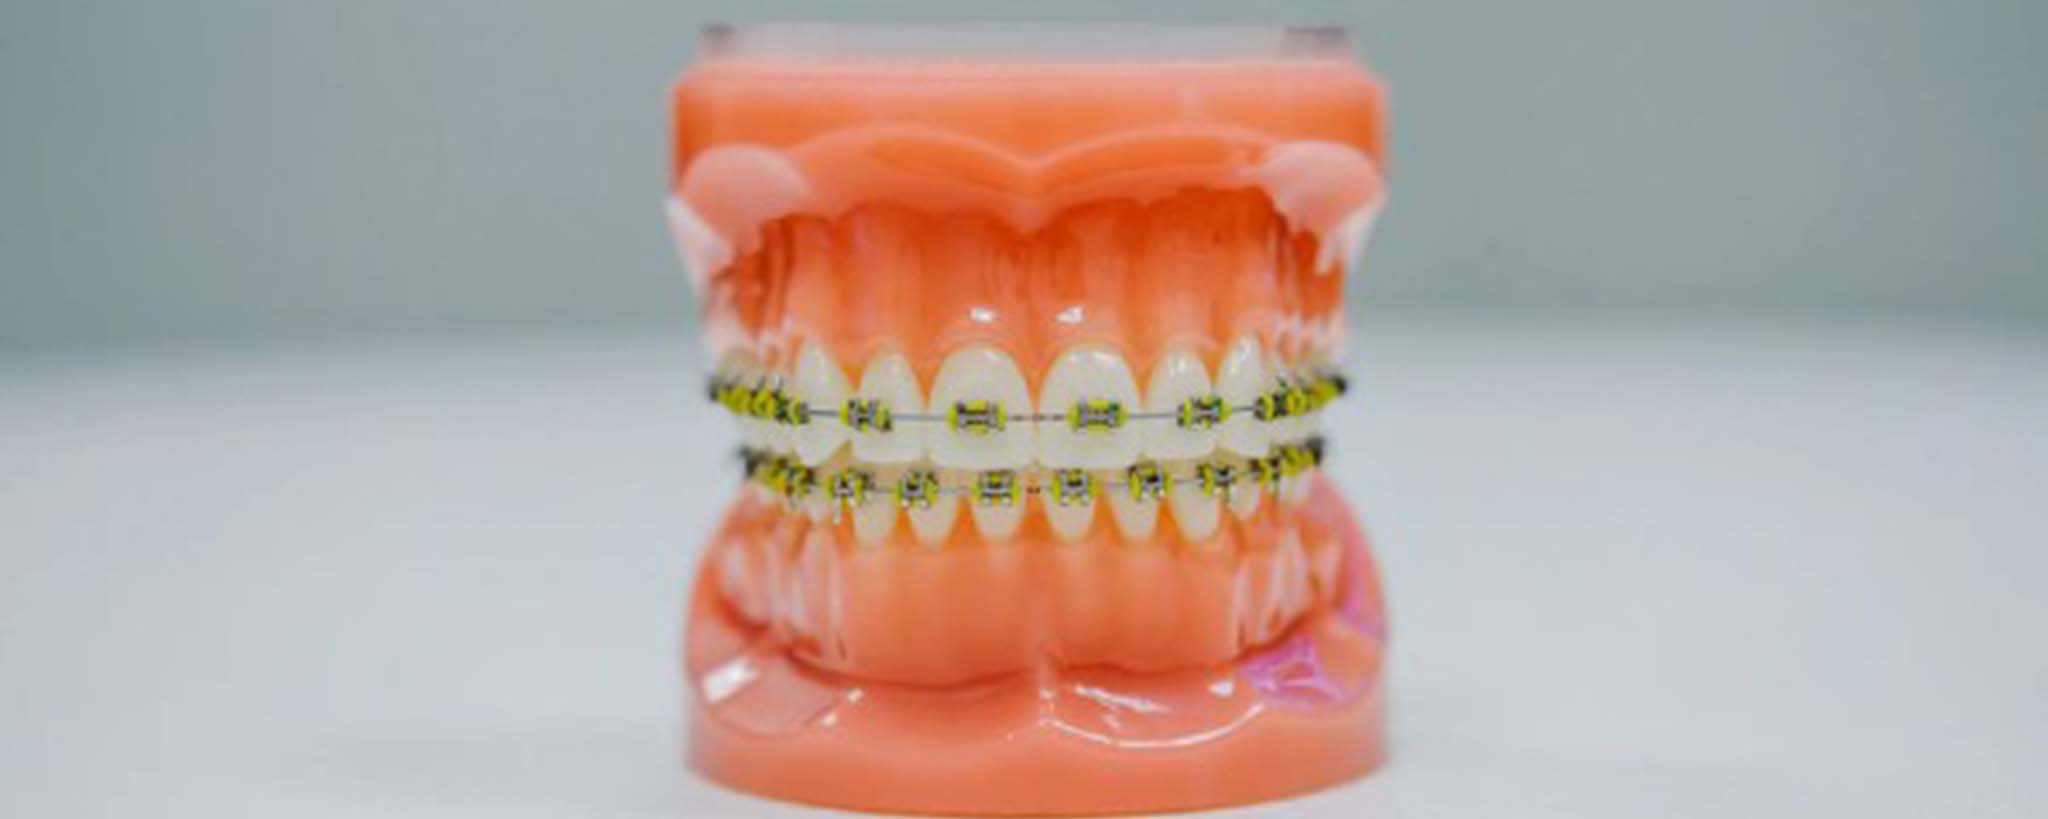 What Do I Do If My Teeth Shift After Braces?